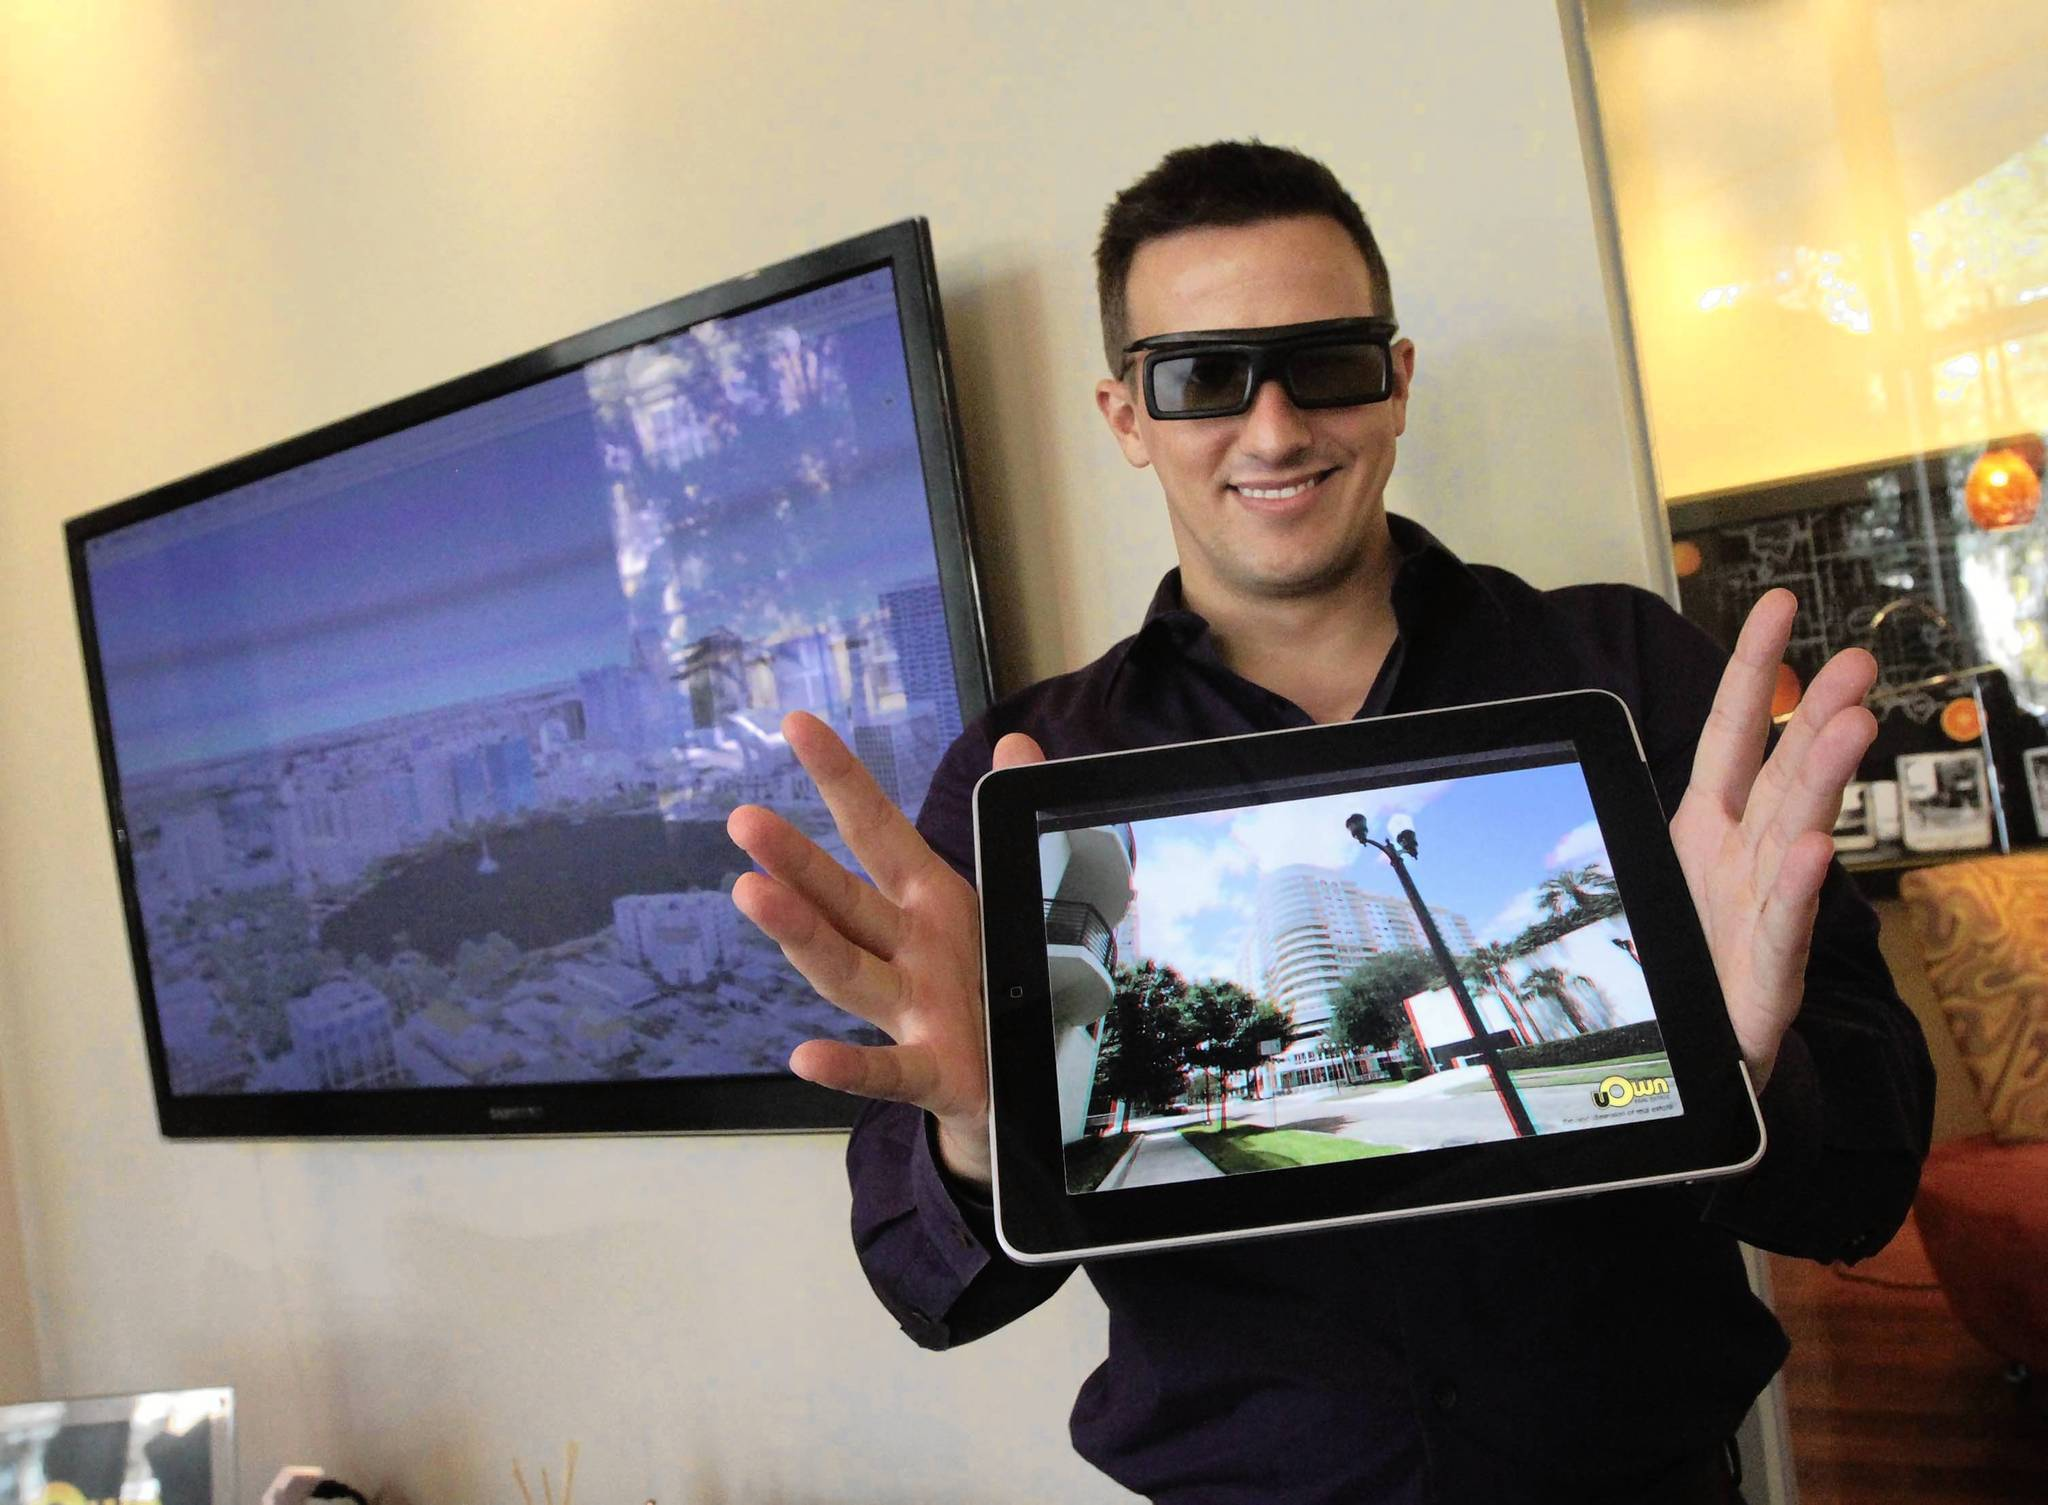 Sean Frank, owner of Orlando-based uOwn Real Estate, holds a tablet with double image to see with 3D glasses. He will be mailing fliers with cardboard 3D glasses so residents can view an online 3D photo gallery of Orlando landmarks on his website.